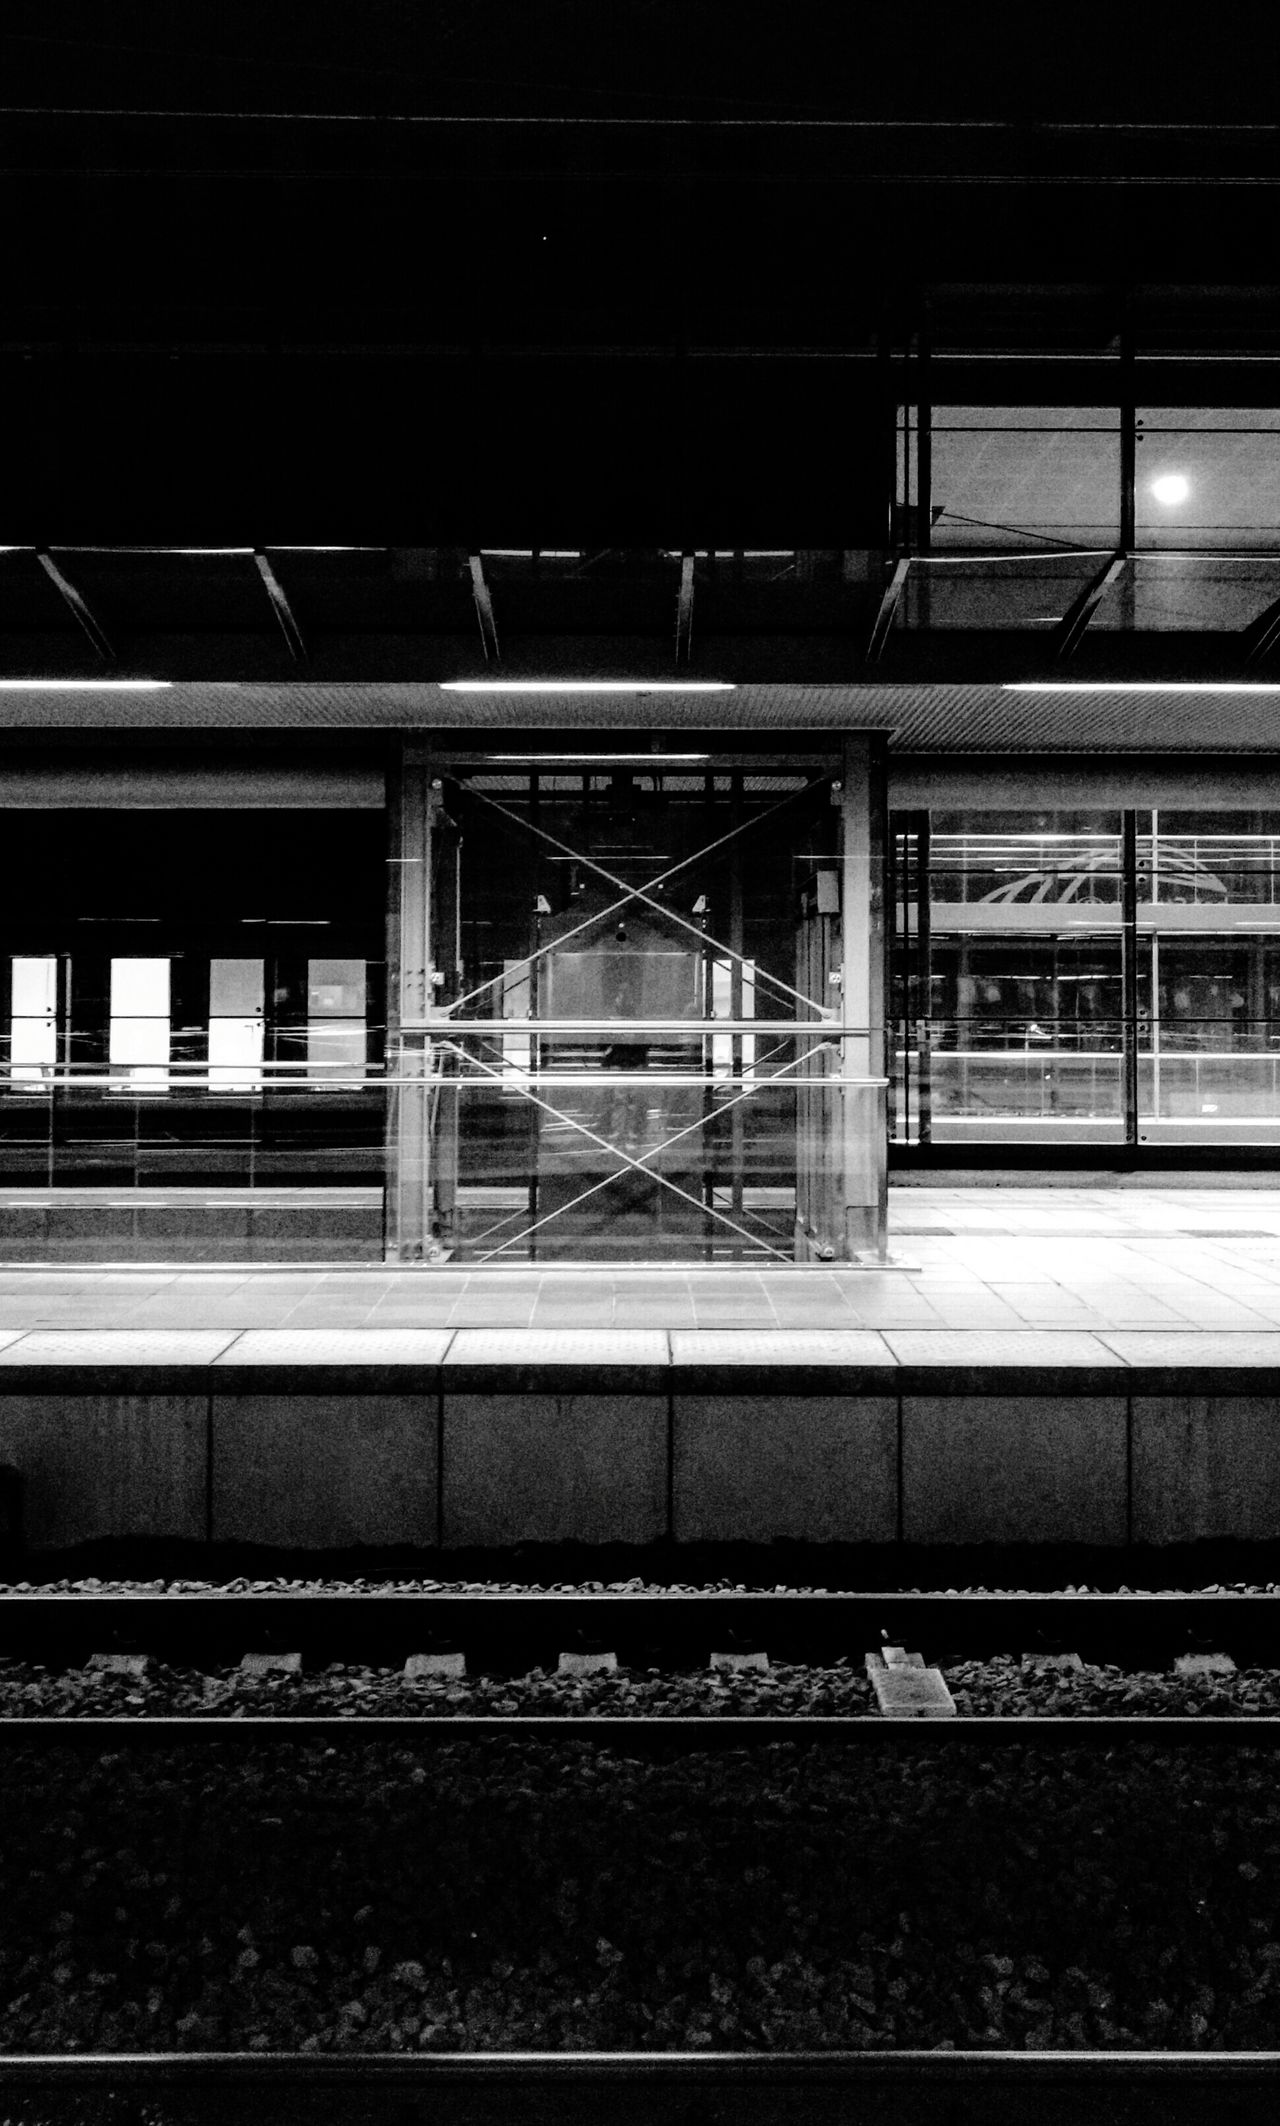 Early morning, waiting for a train. Public Transportation Train Commuting Blackandwhite Grayscale